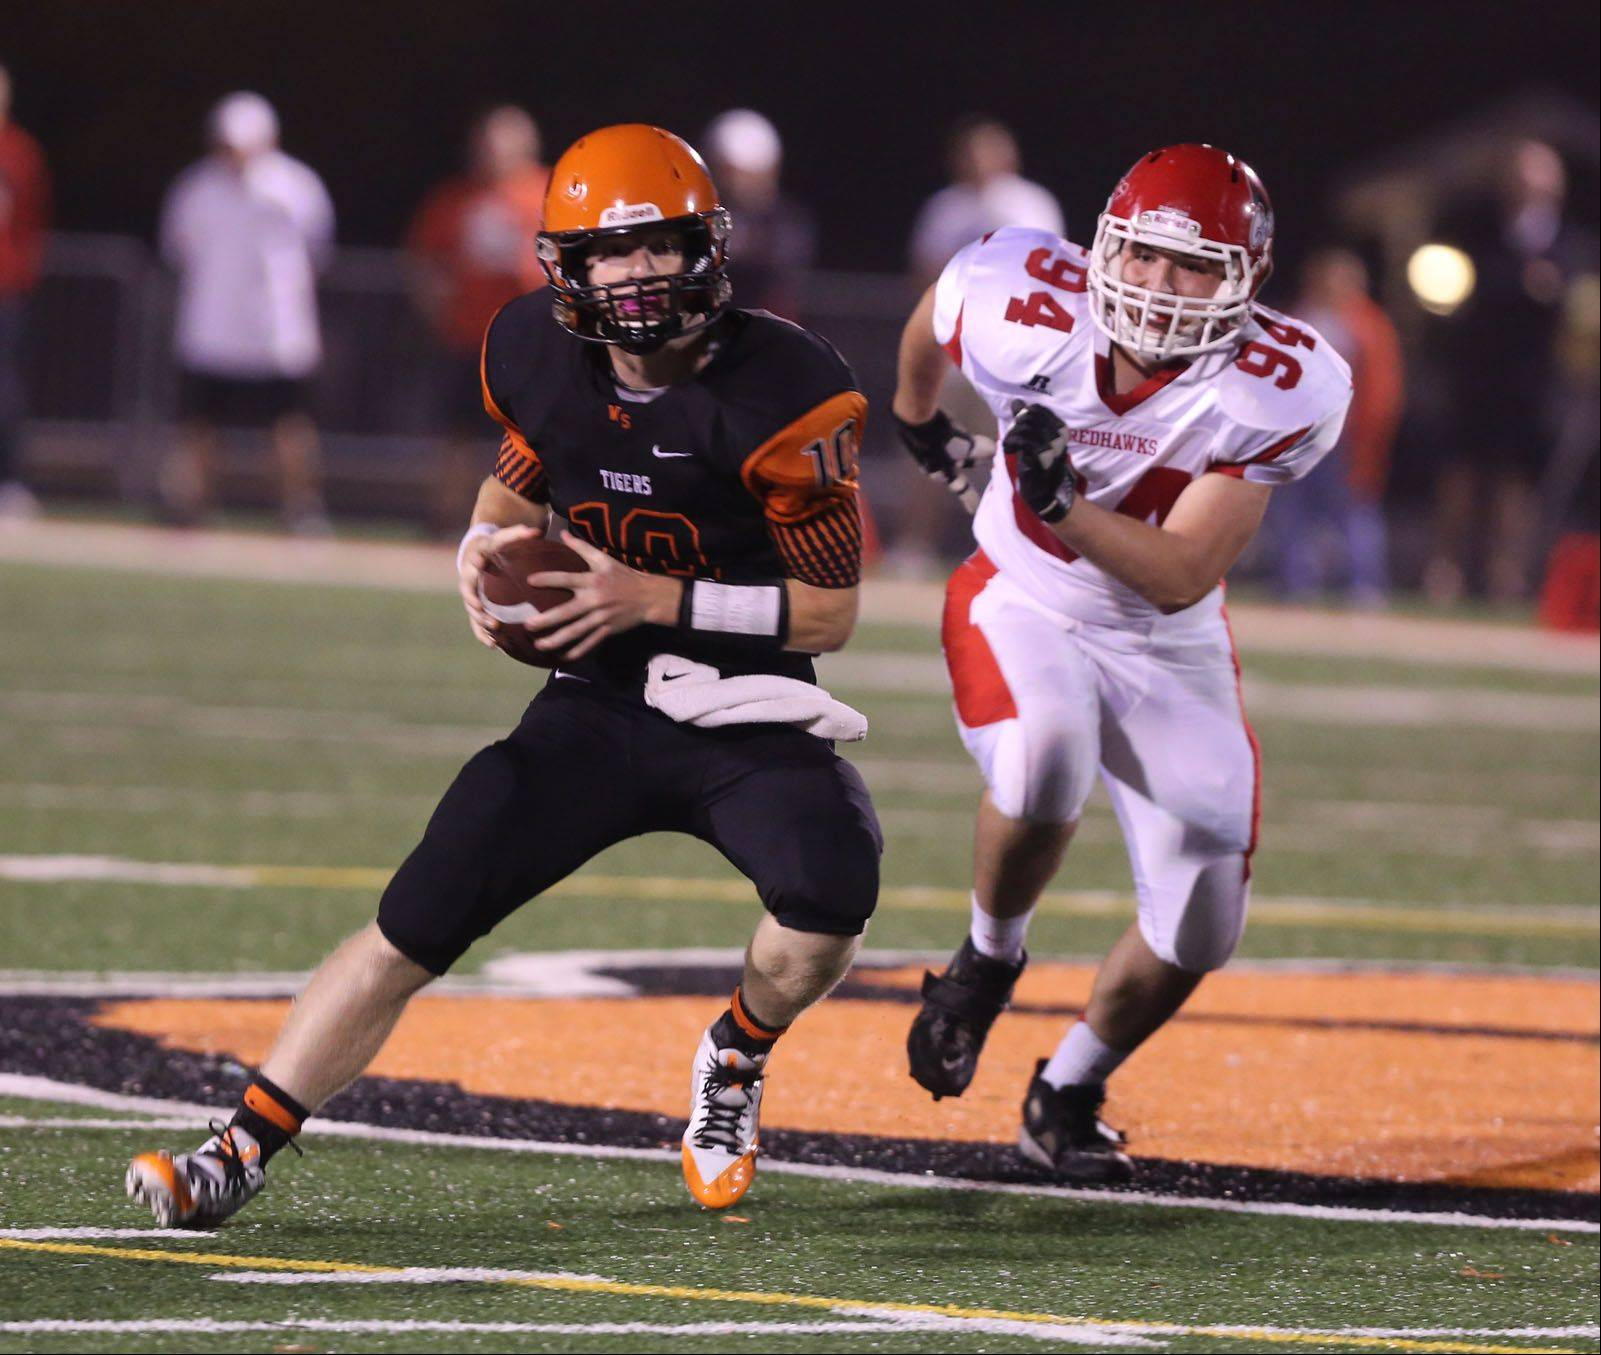 Wheaton Warrenville South quarterback Ryan Graham eludes Naperville Central's Louie Giovannetti .